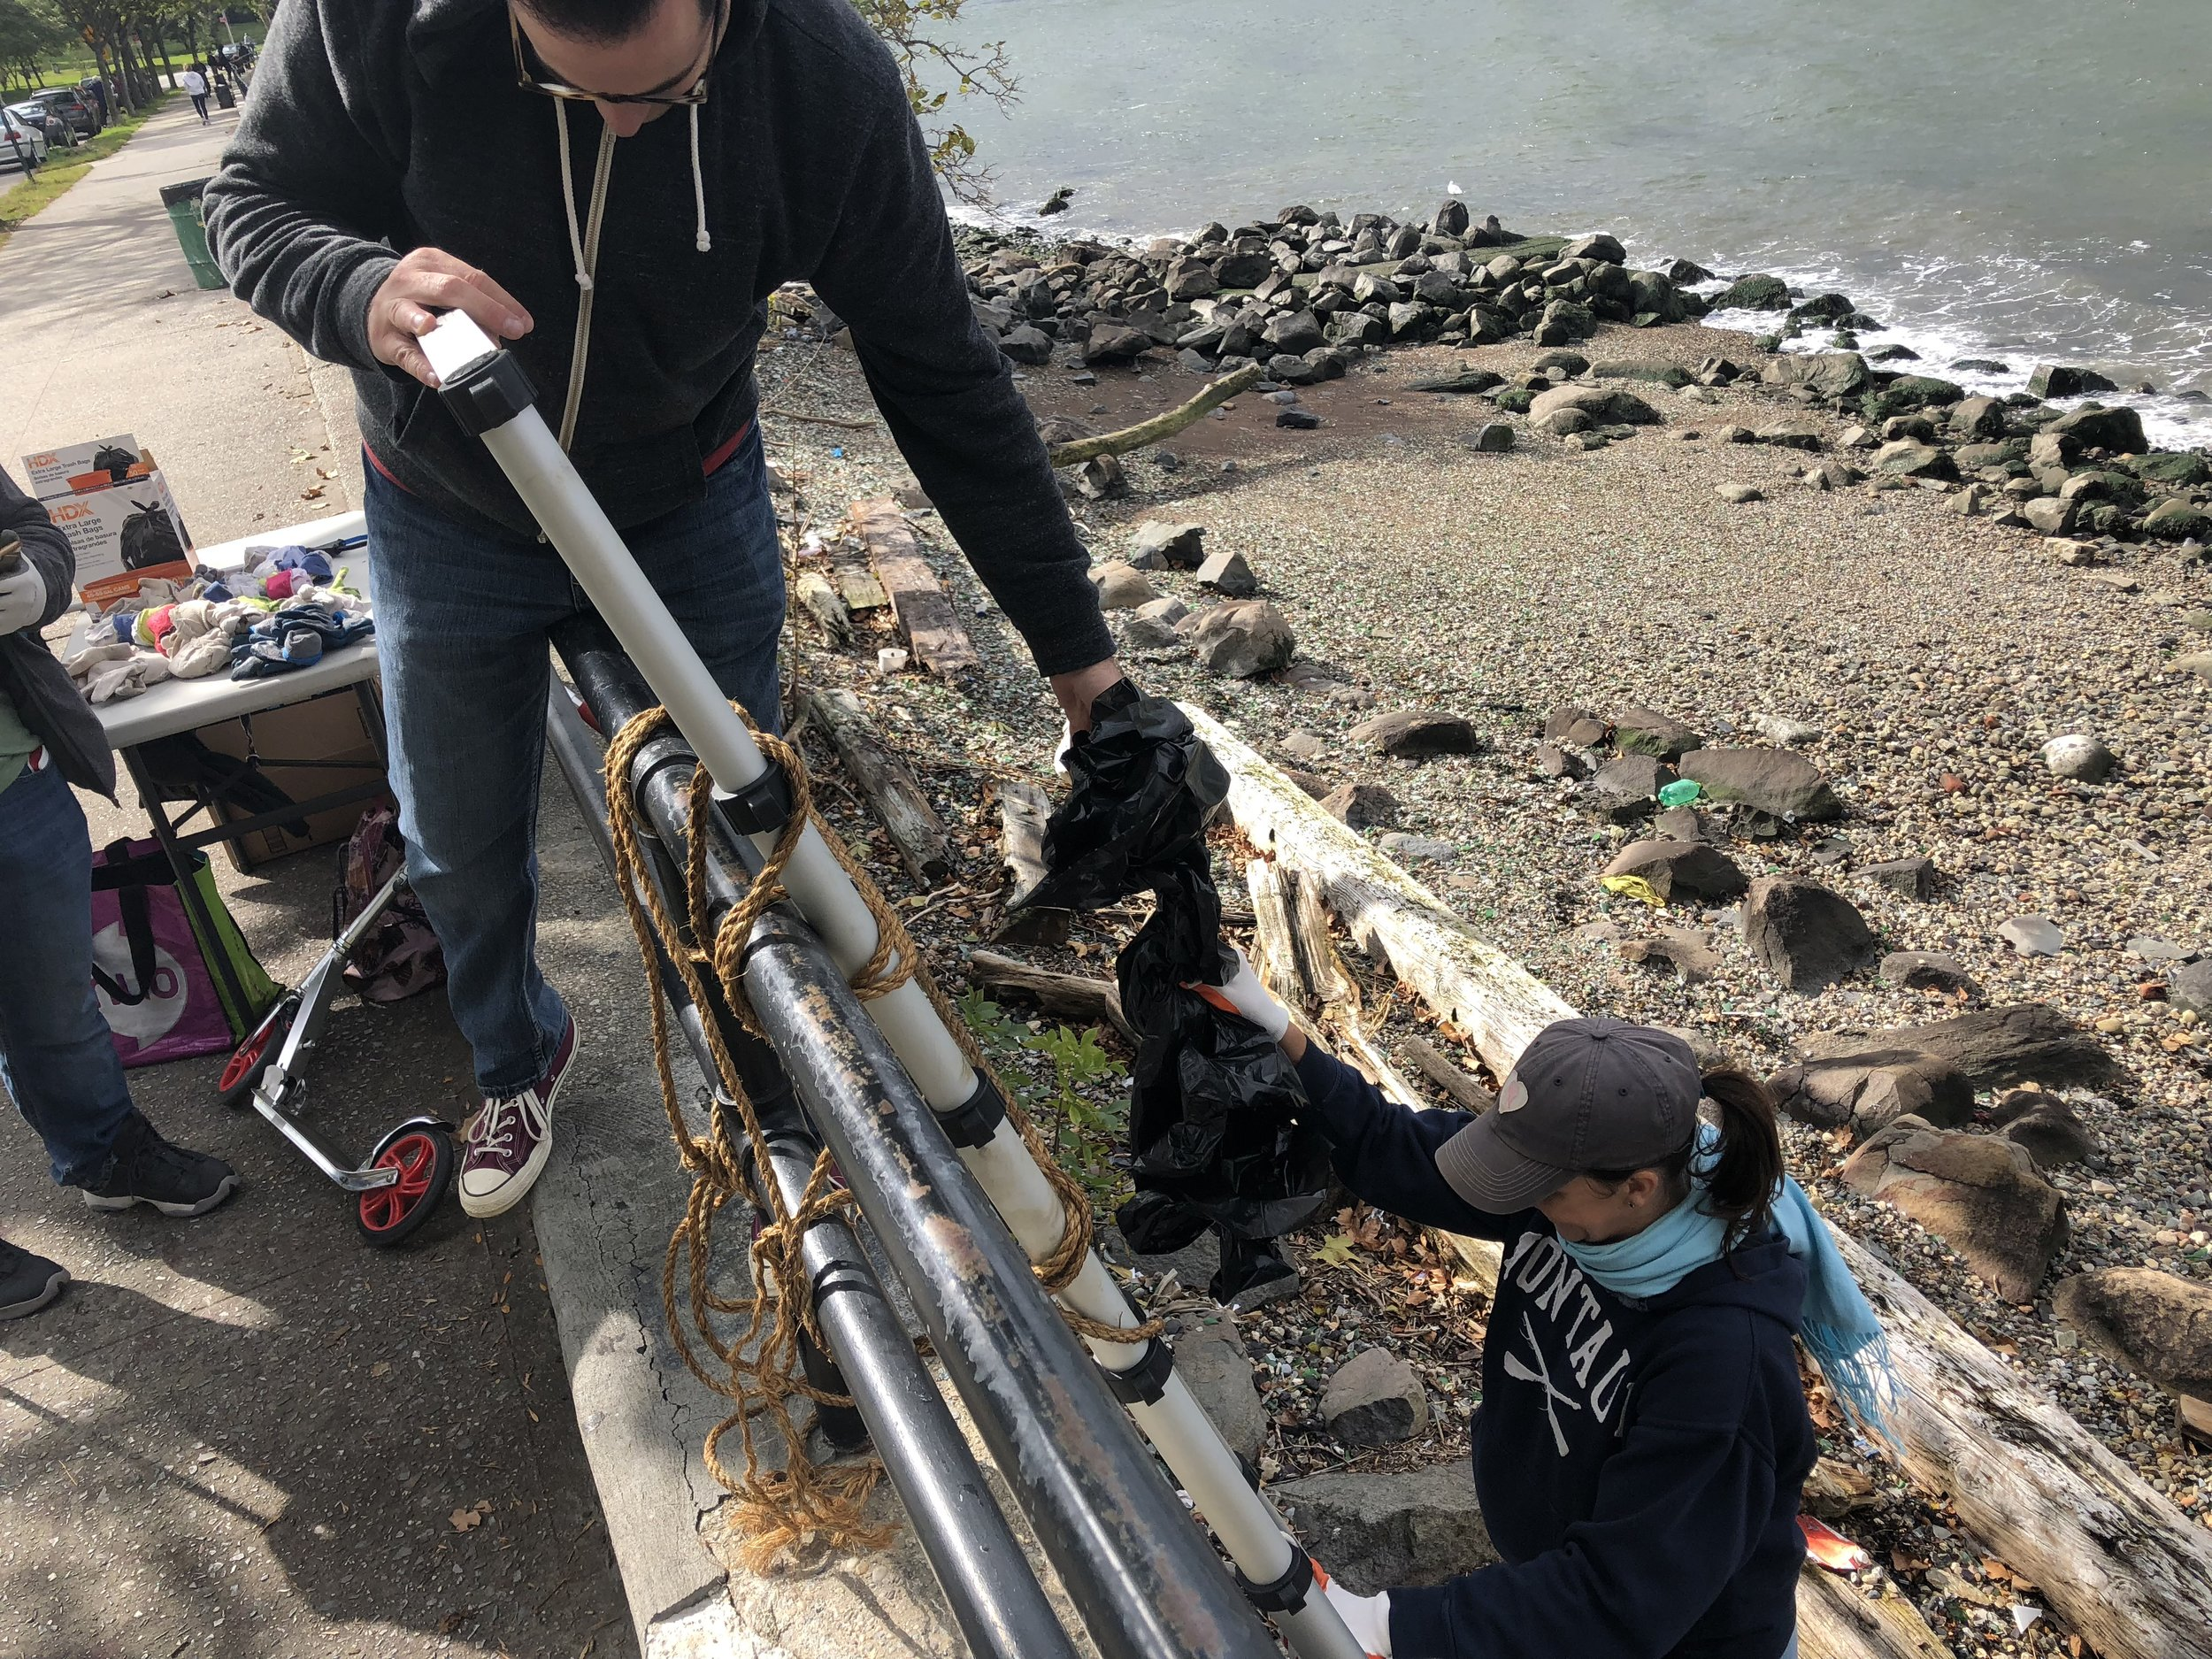 Volunteers from the Astoria Park Alliance cleanup the park's shoreline.